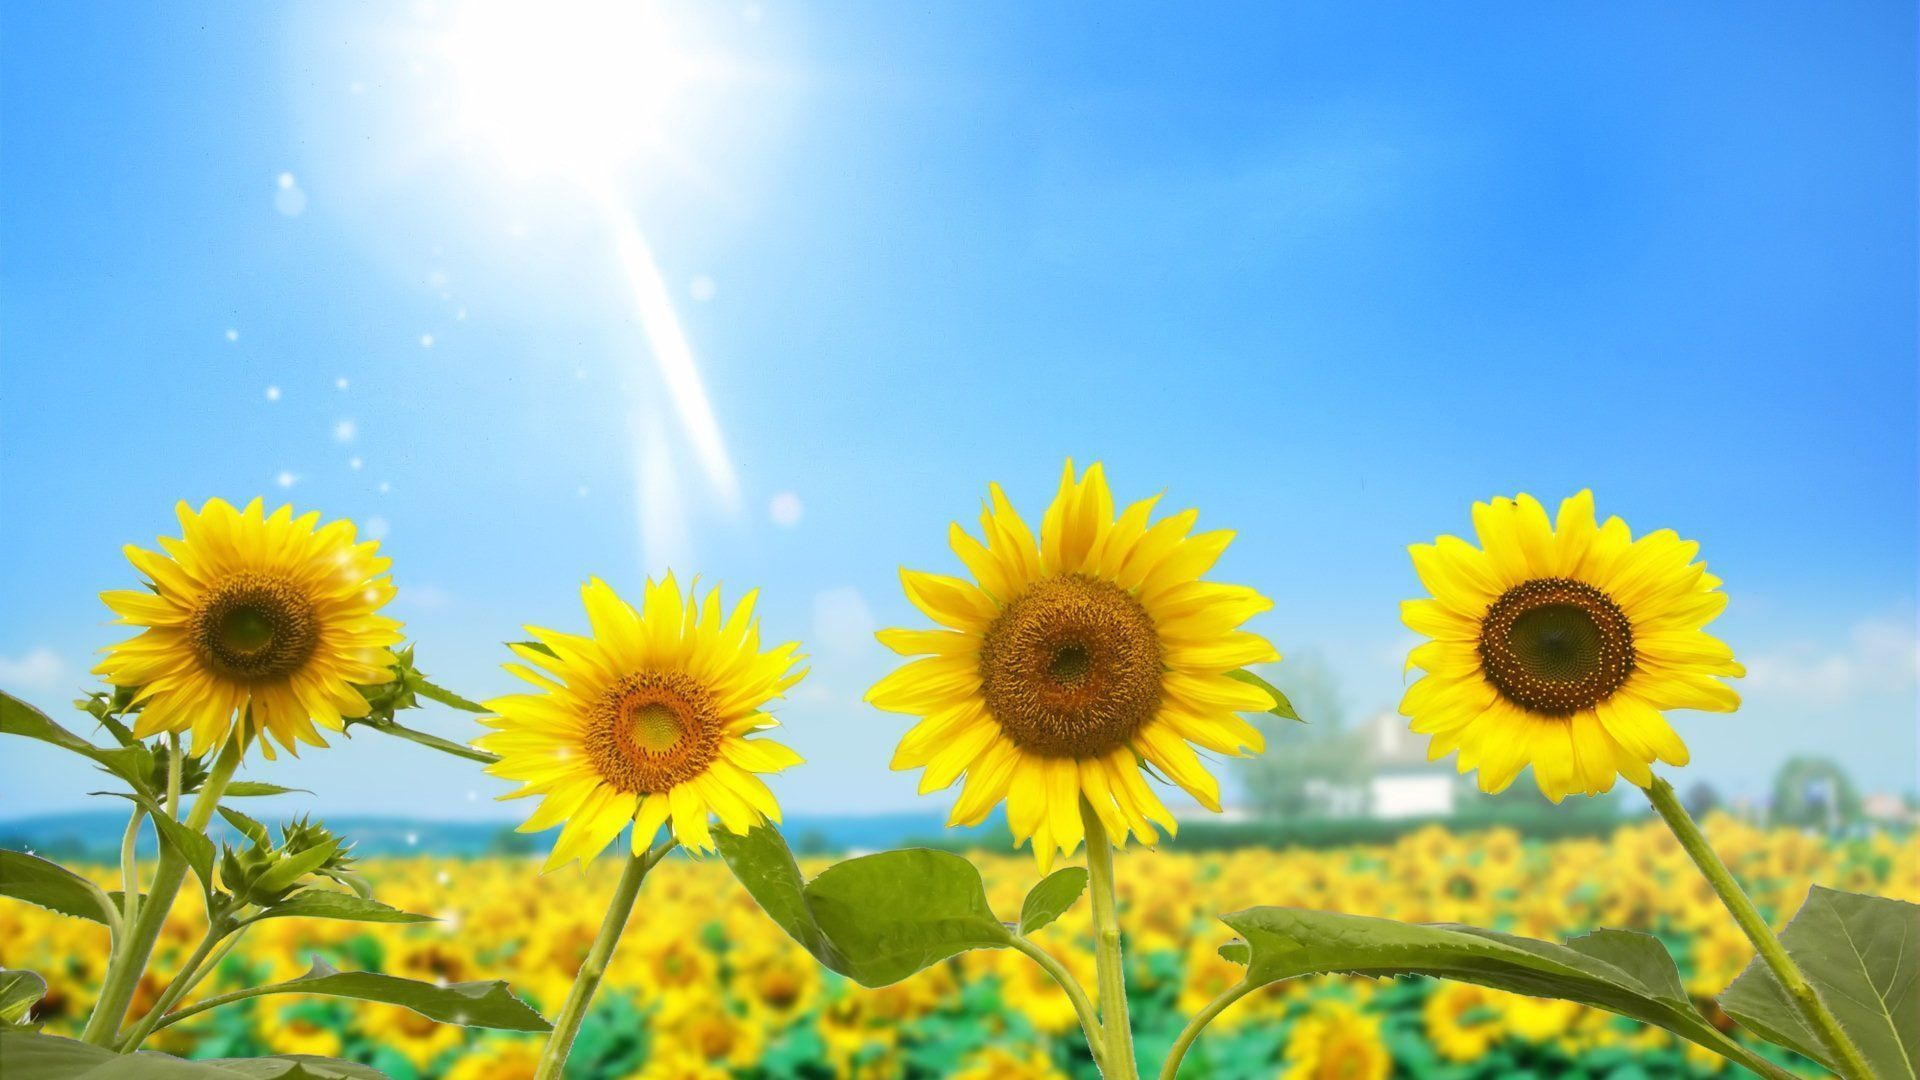 Sunflower Wallpaper Android Apps on Google Play   HD ...